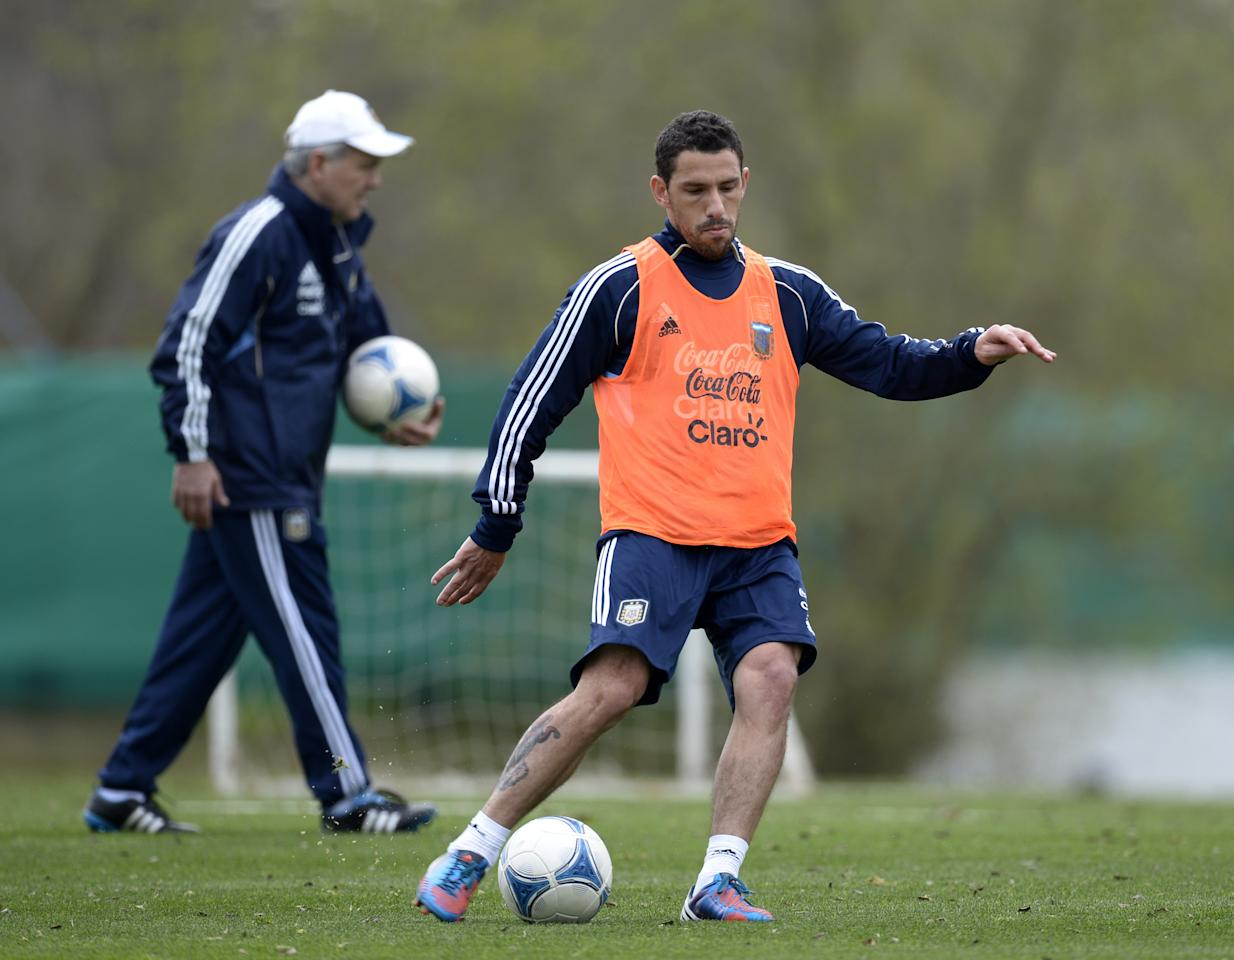 Argentina's midfielder Maximiliano Rodriguez strikes the ball during a training session of the national football team in Ezeiza, Buenos Aires, on September 4, 2012 ahead of the Brazil 2014 World Cup South American qualifier match against Paraguay to be held in Cordoba on September 7. AFP PHOTO / Juan MABROMATAJUAN MABROMATA/AFP/GettyImages